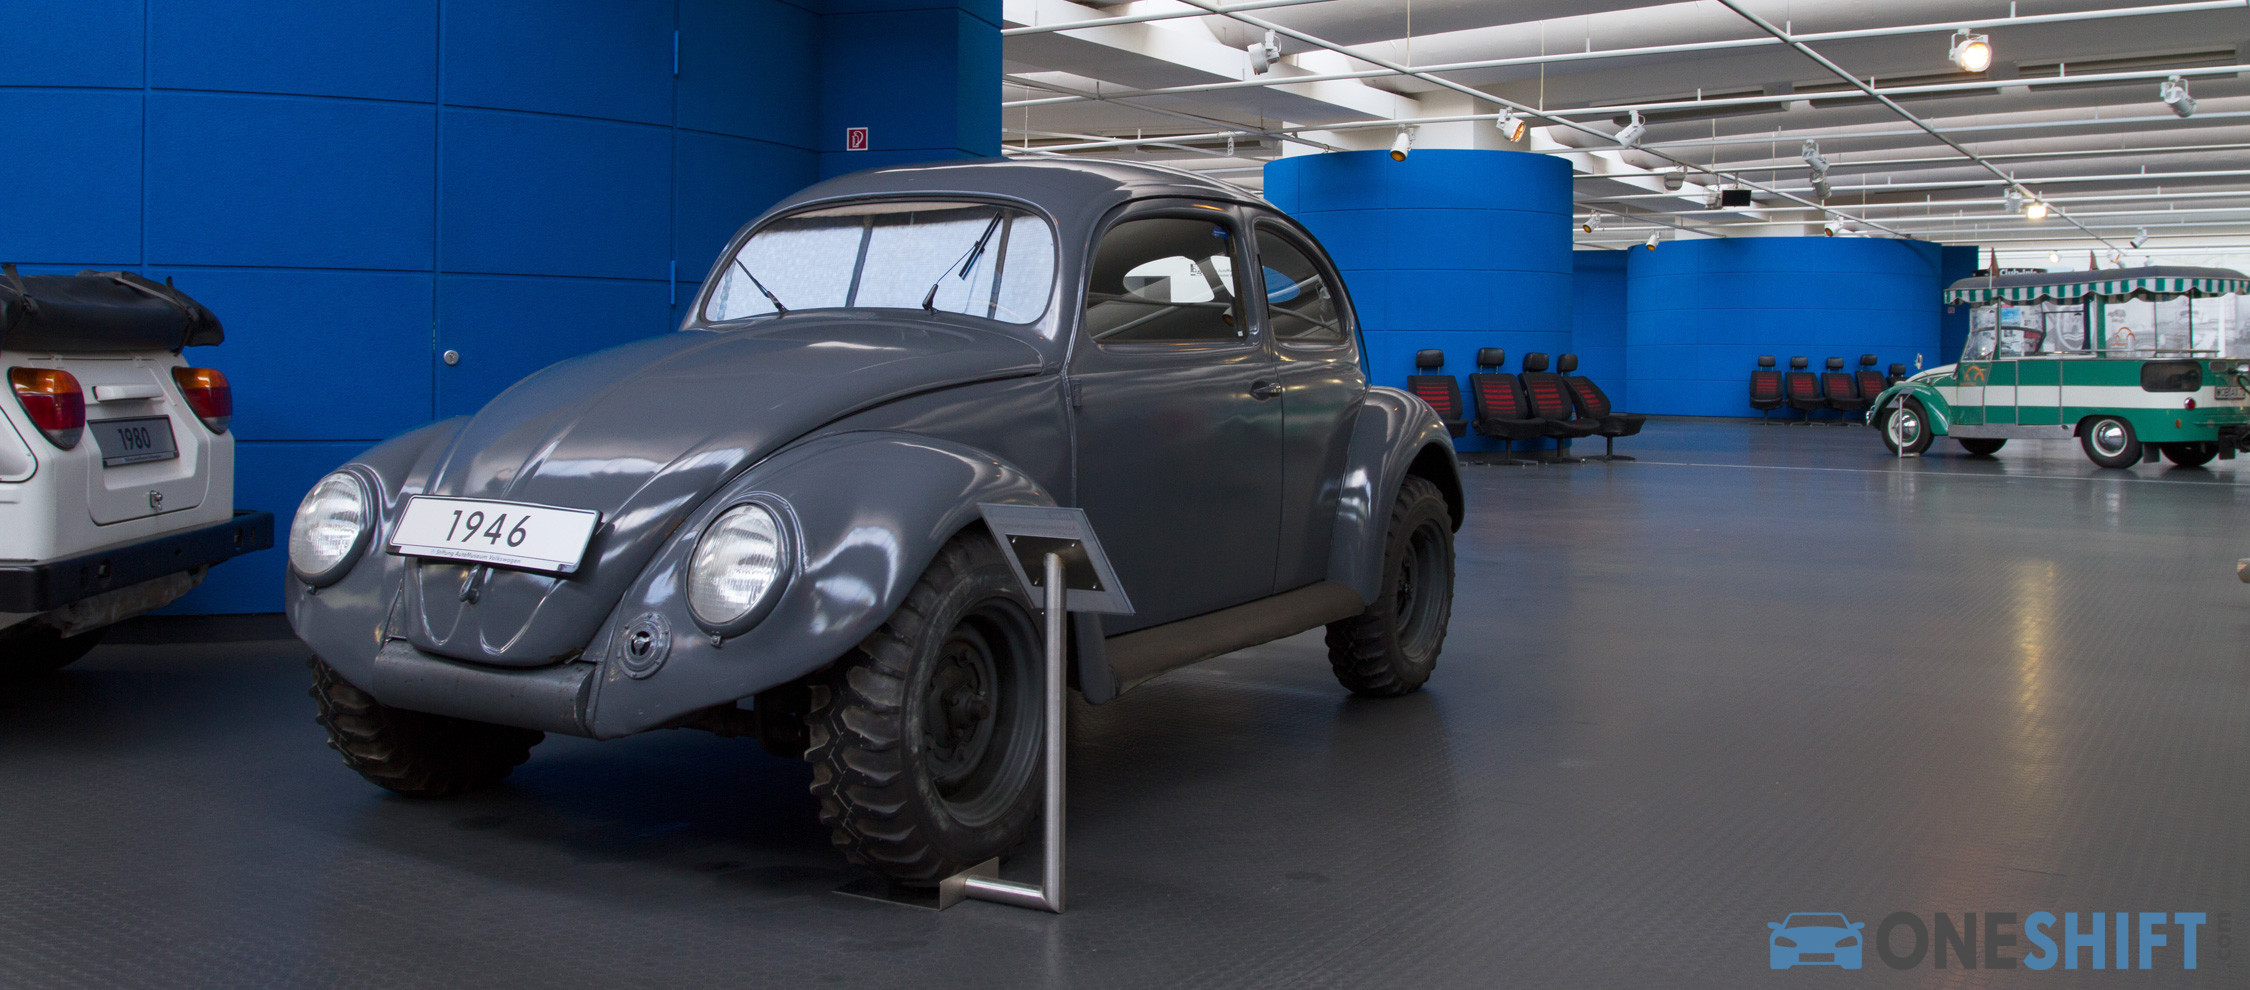 Volkswagen Museum Beetle Collection Photo Story